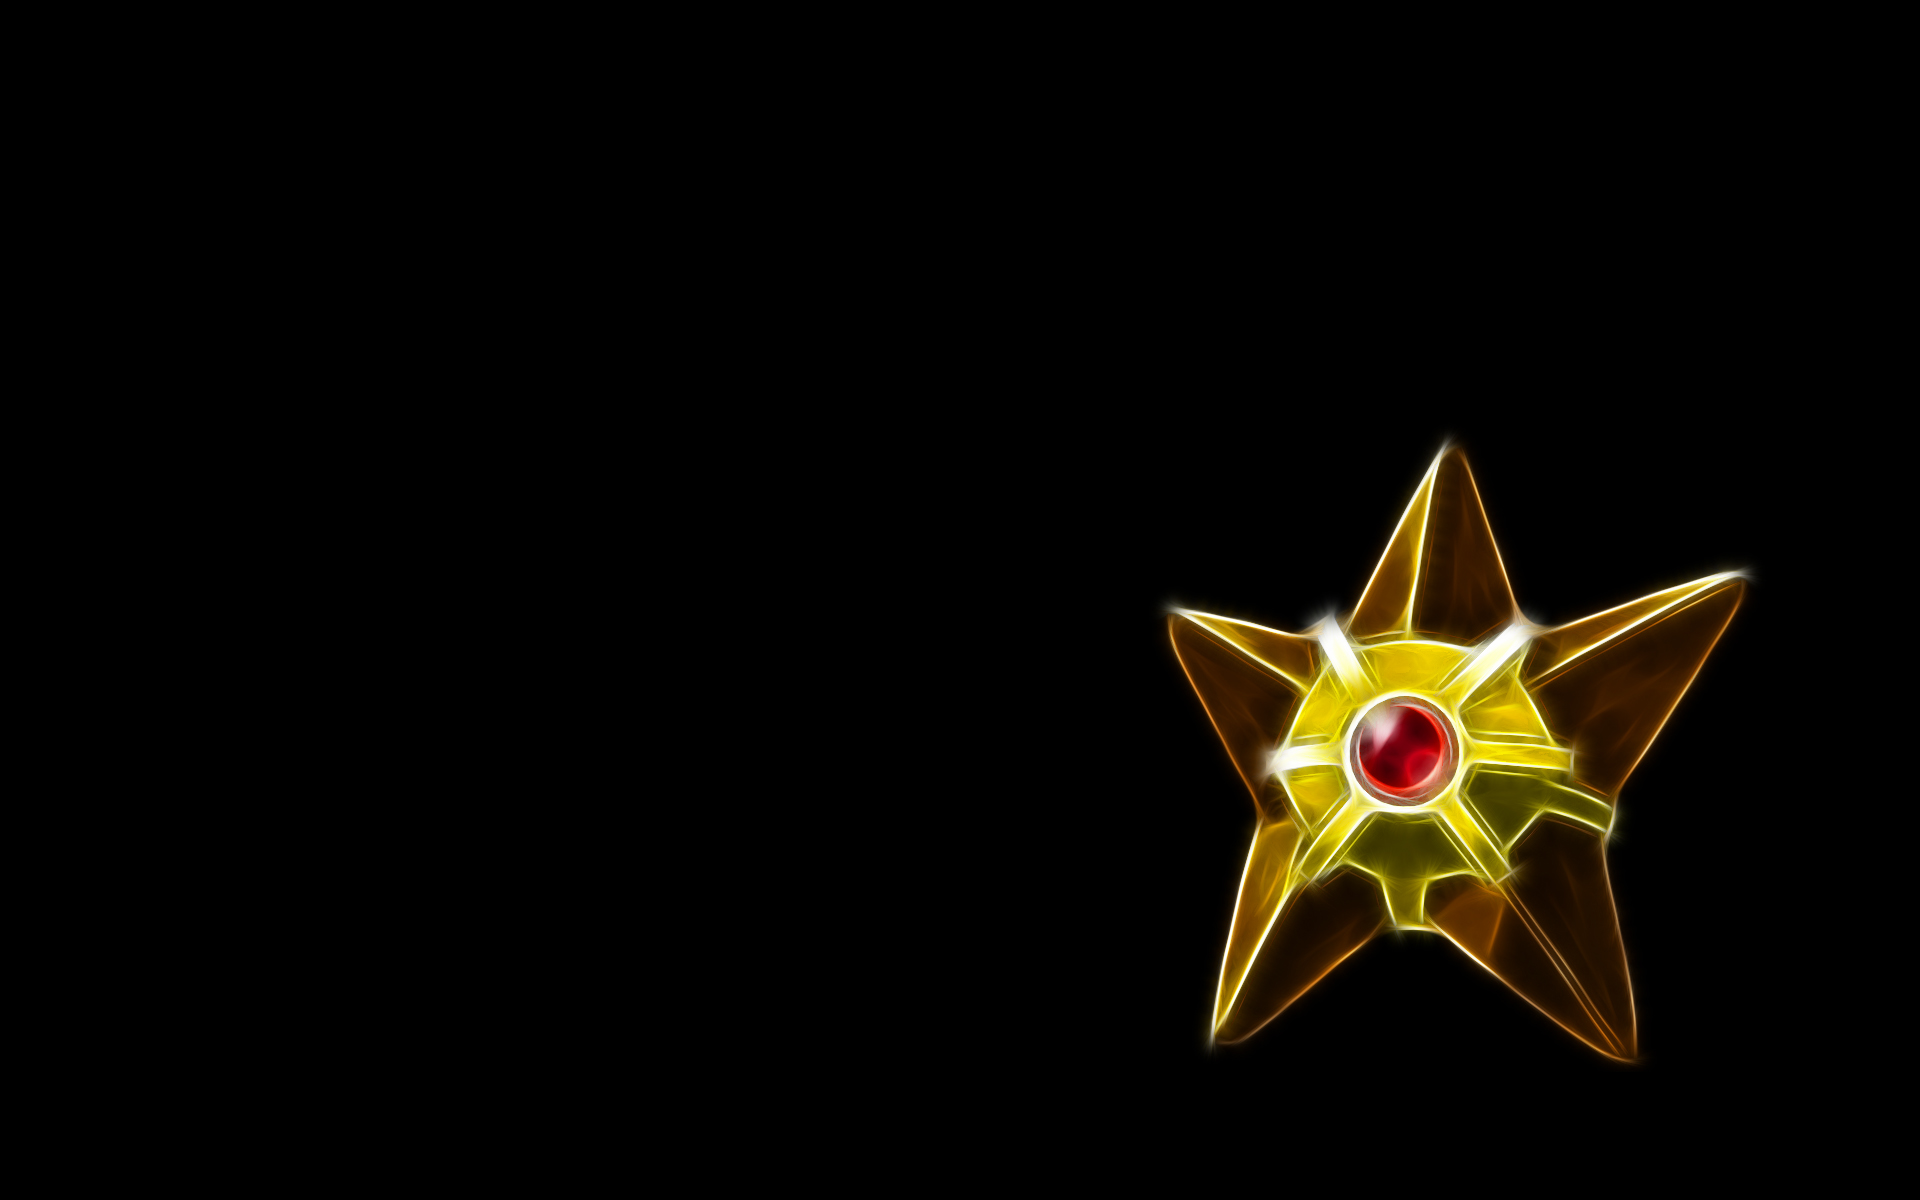 Staryu Pokemon Google Wallpapers Staryu Pokemon Google Backgrounds 1920x1200